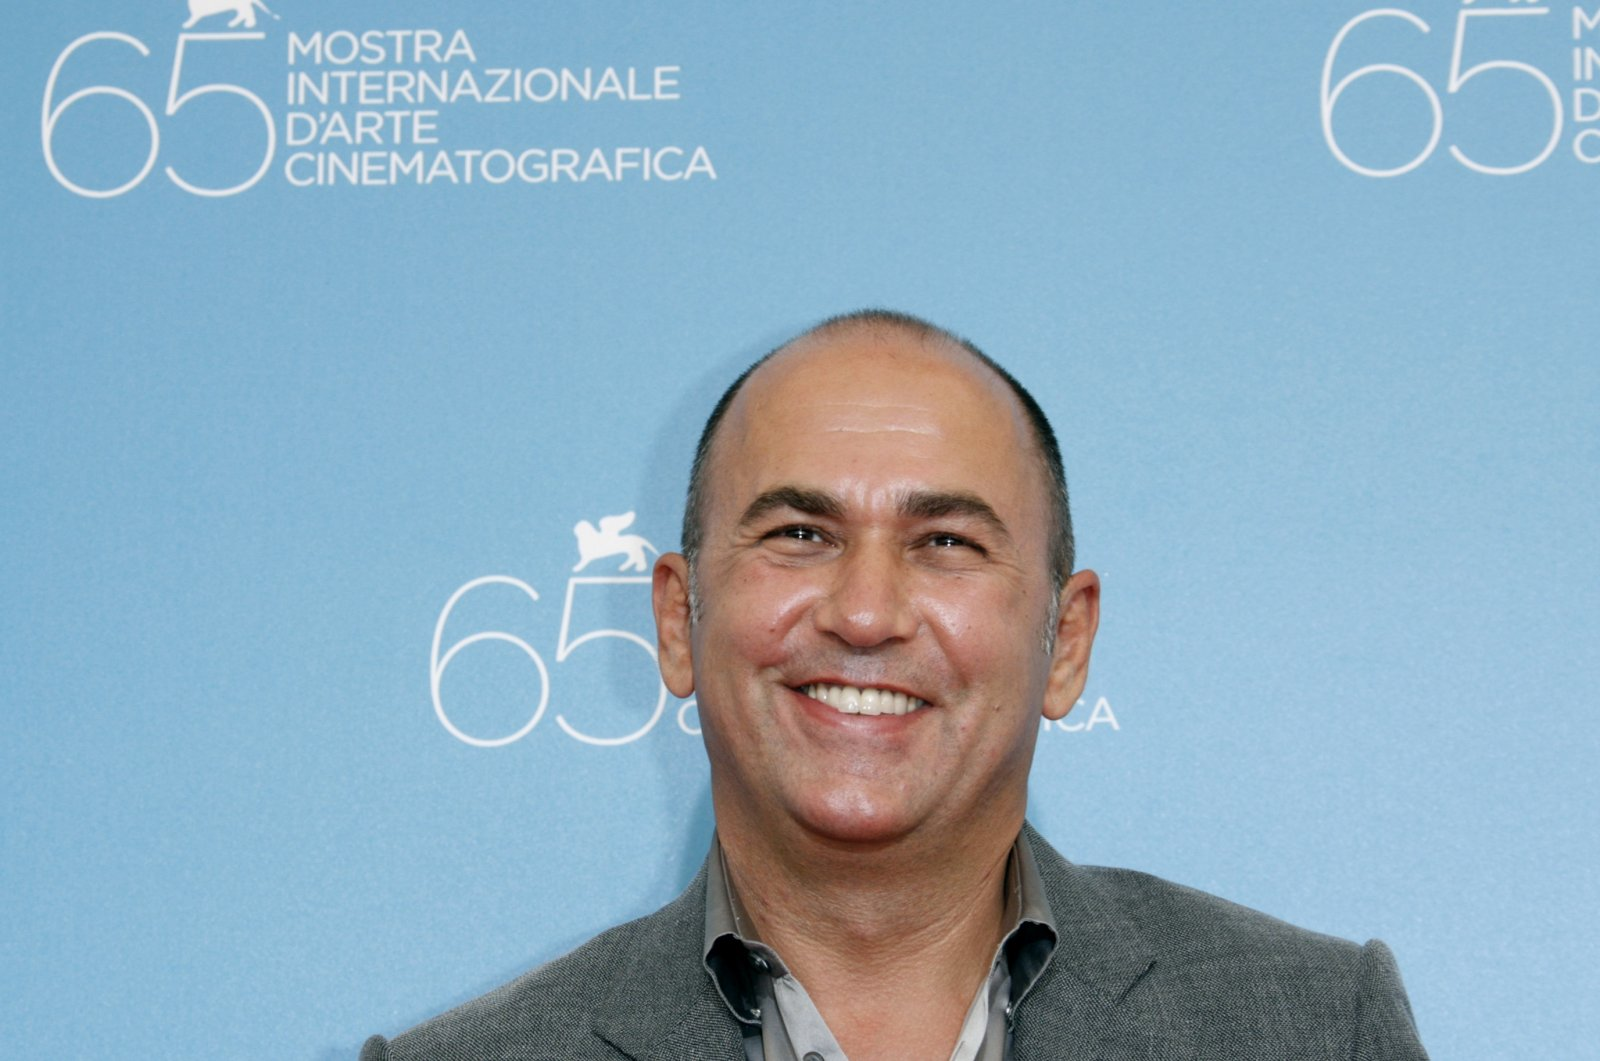 Ferzan Özpetek, a prominent director of Turkish descent, poses during a photo-call at the Venice Film Festival, Italy, Aug. 30, 2008. (REUTERS PHOTO)